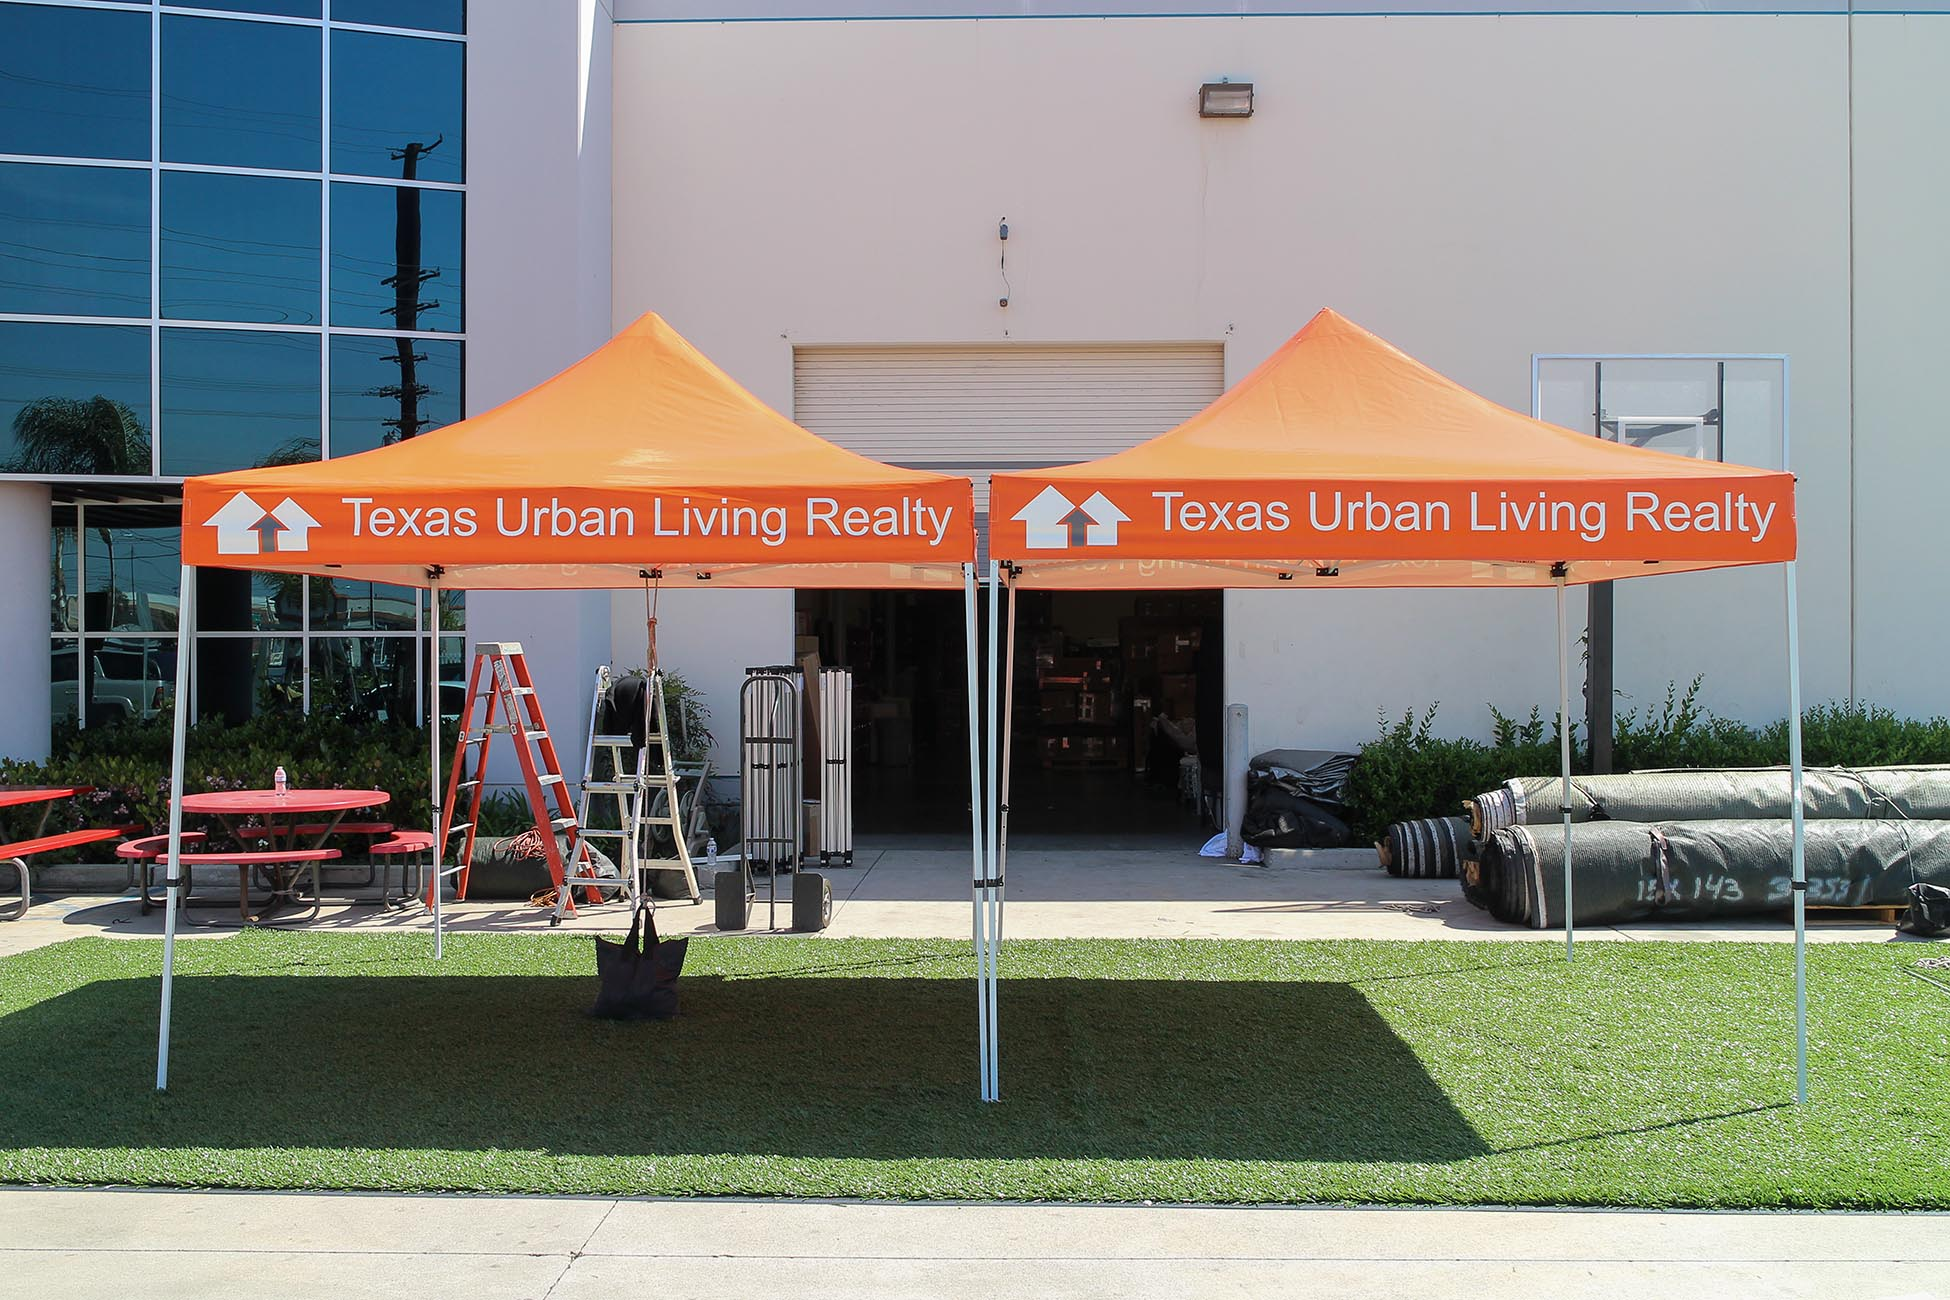 texas-urban-living-realty-10x10-canopies